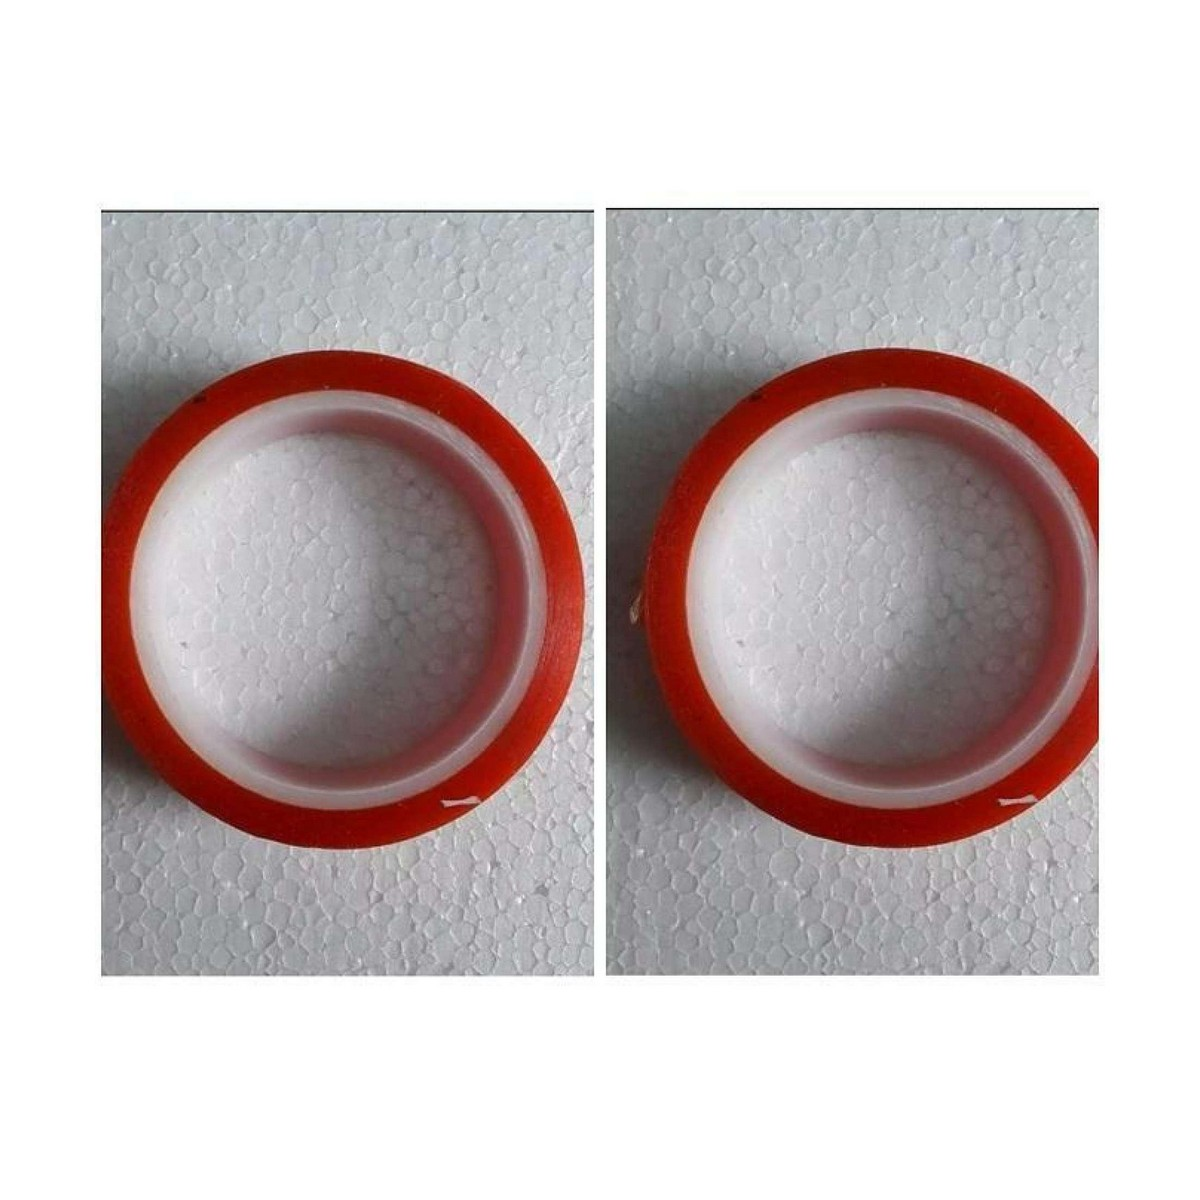 Wig Tape For Hair Wigs - Red - Pack Of 2